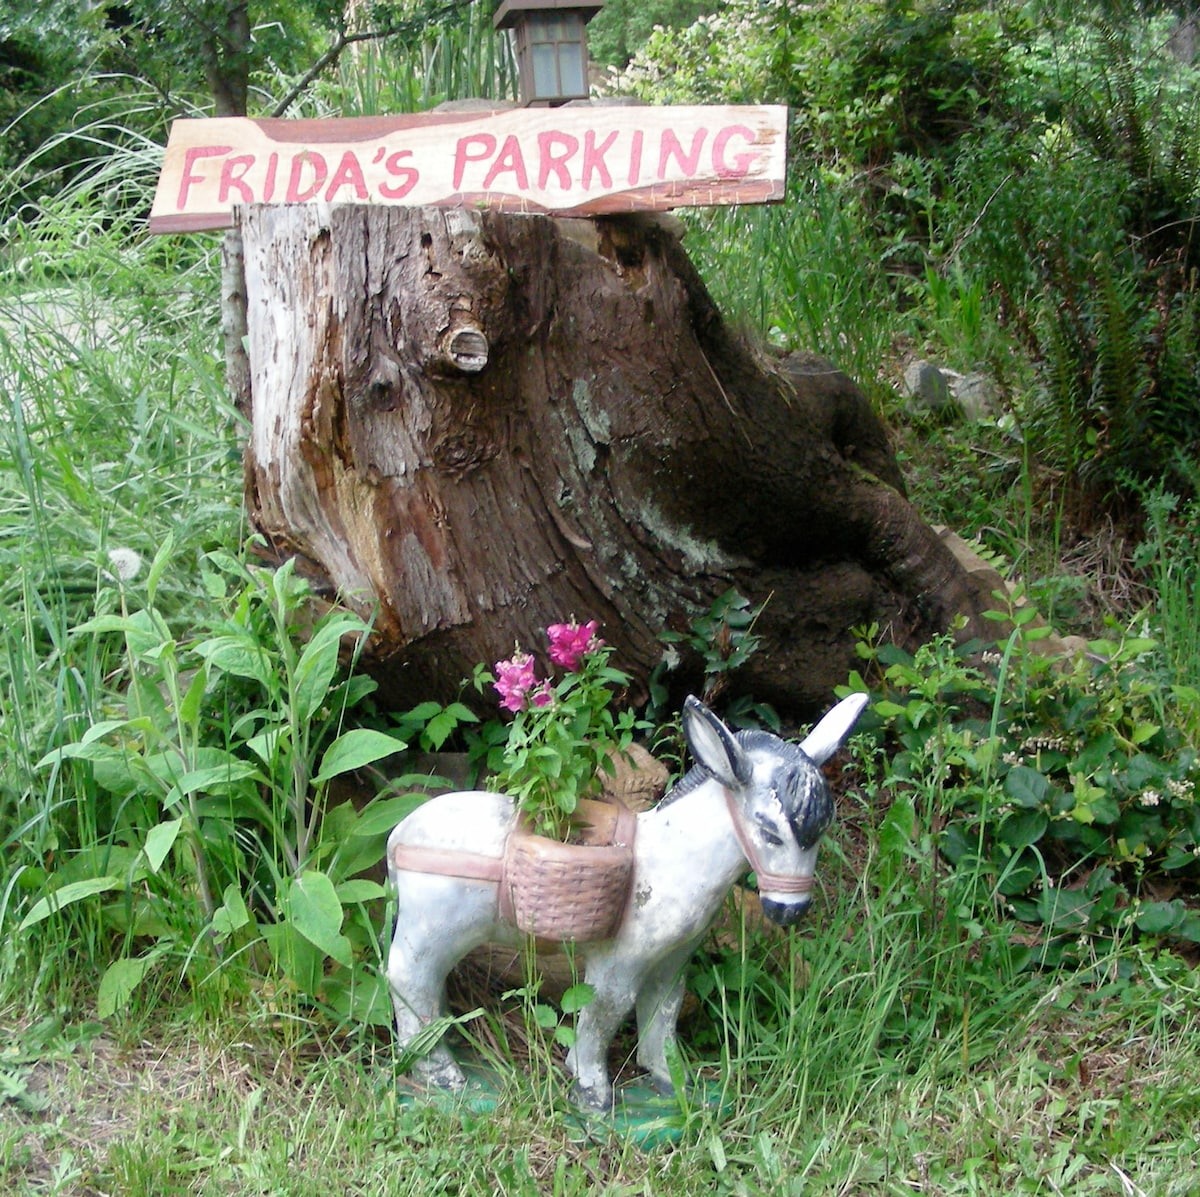 Hitch up your donkey at Fridas parking